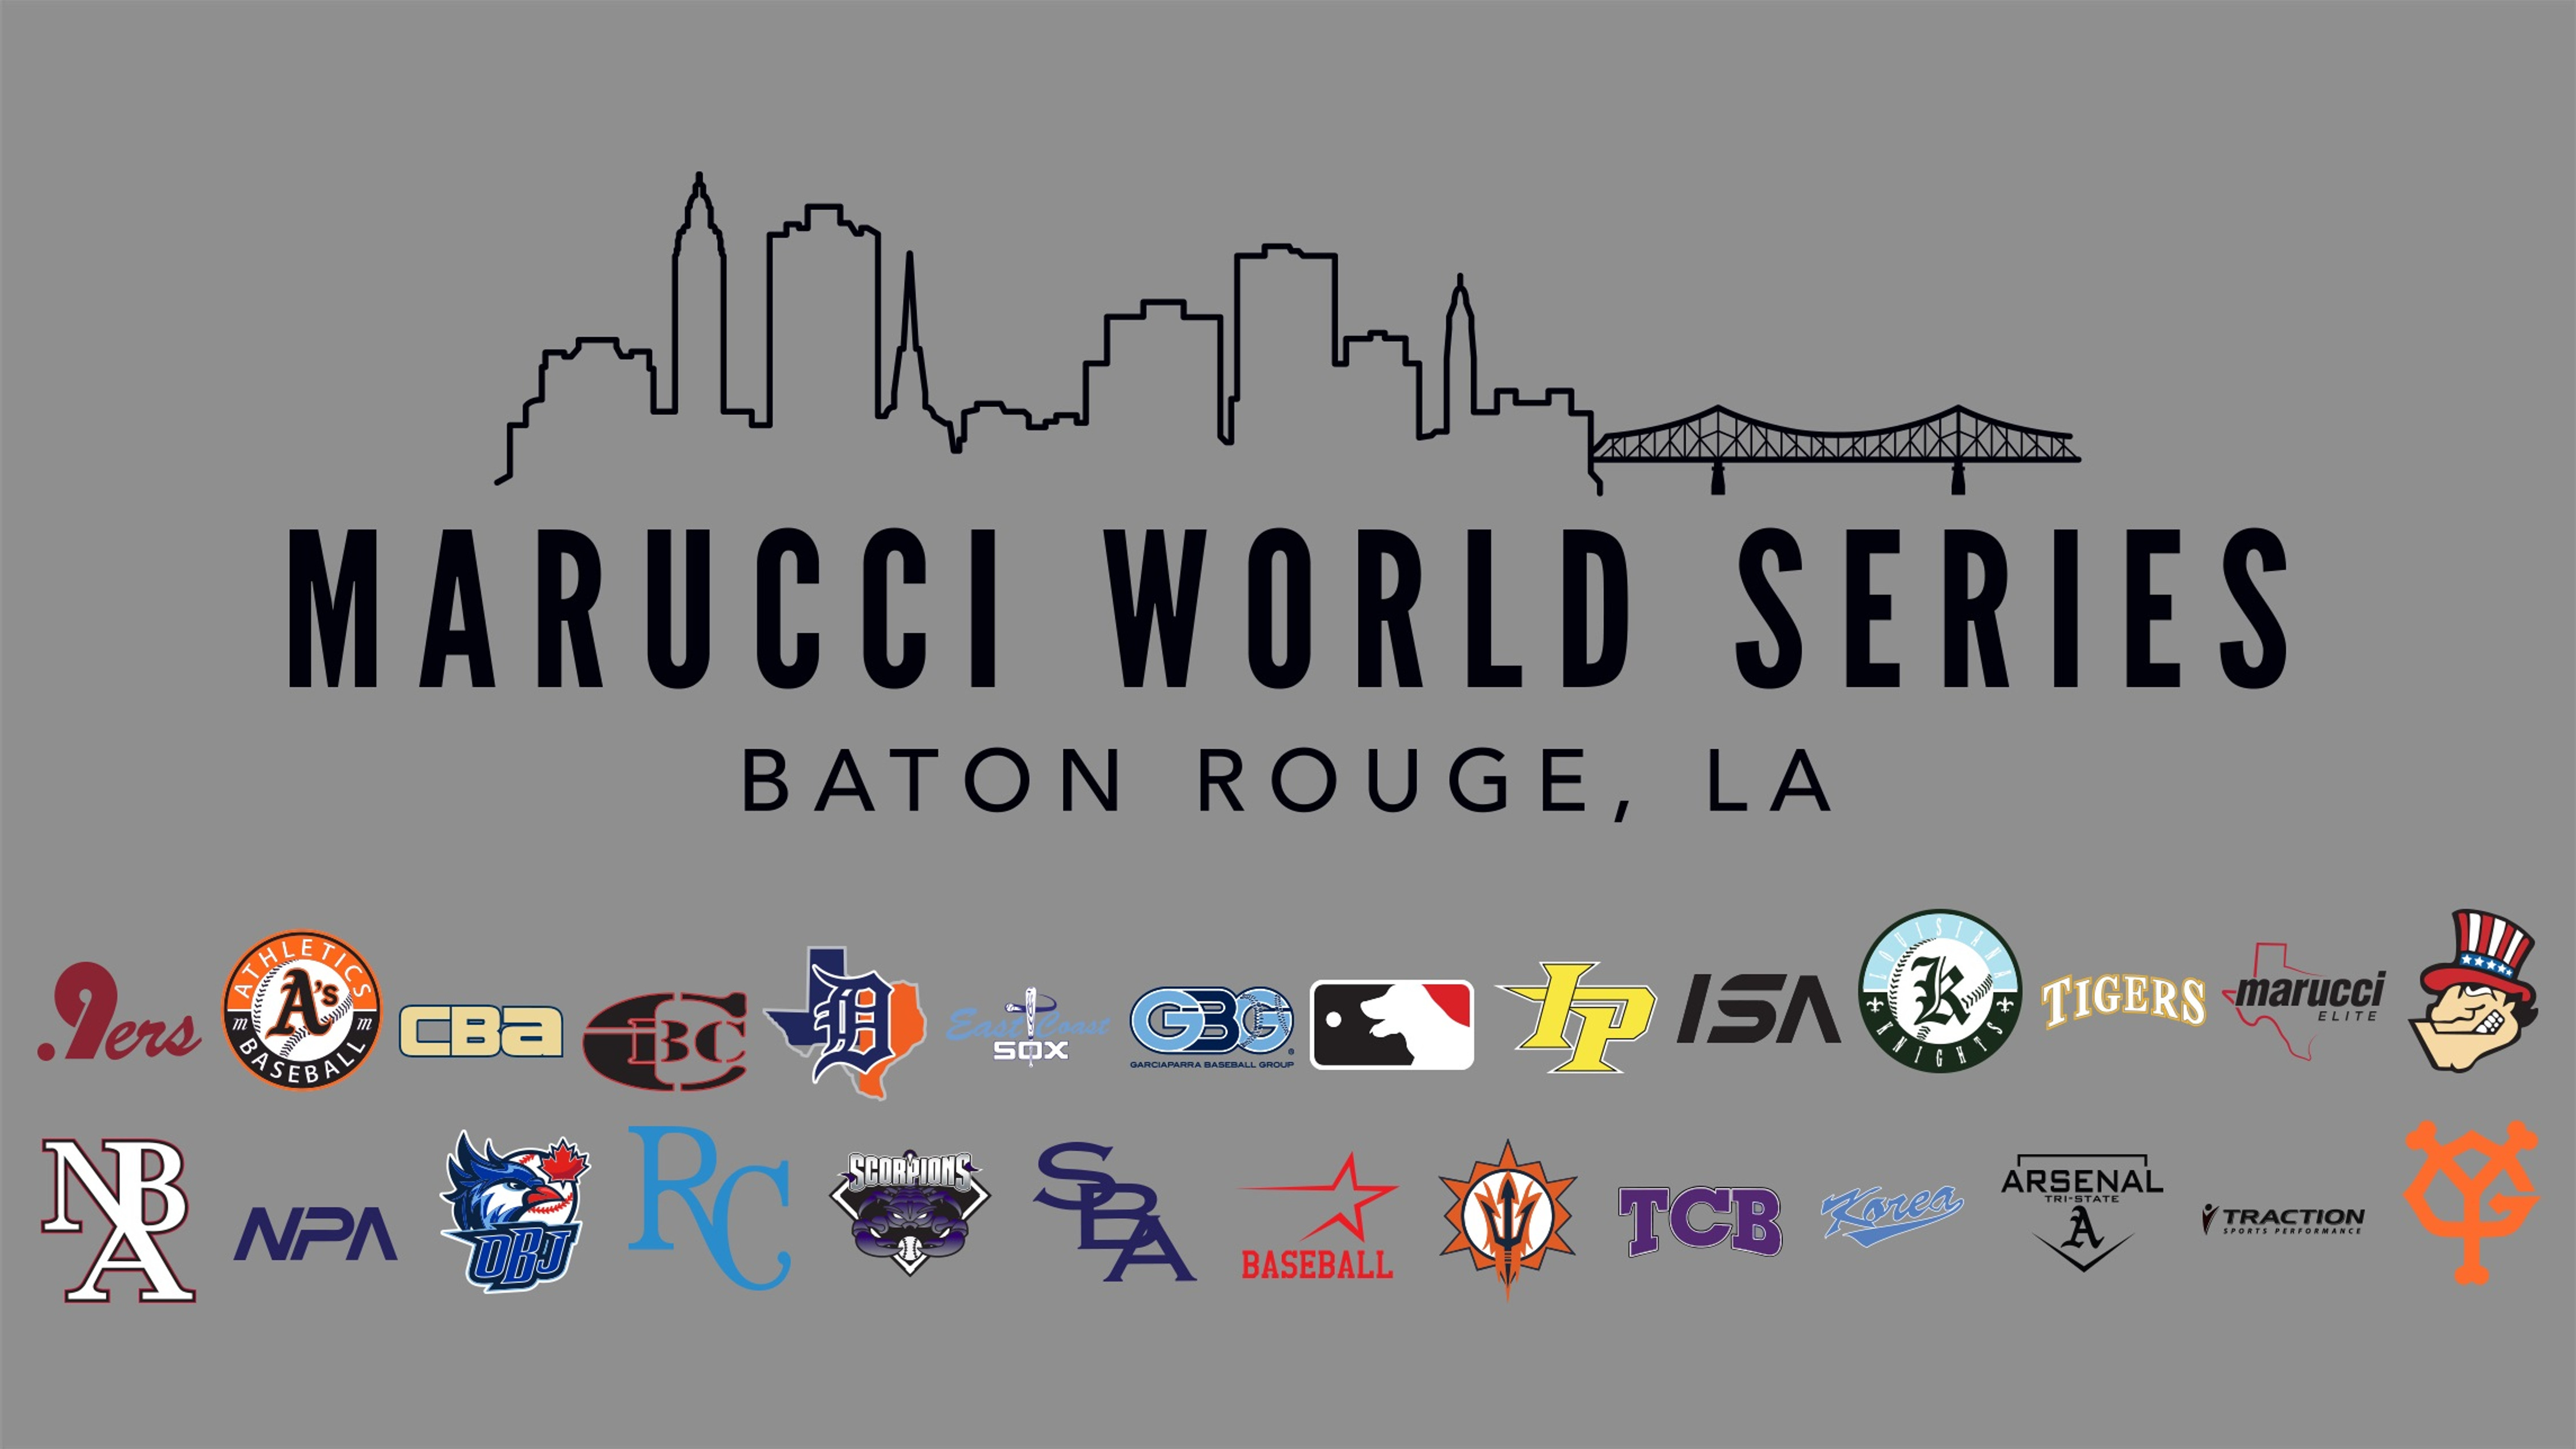 Marucci set to host 4th annual Marucci World Series